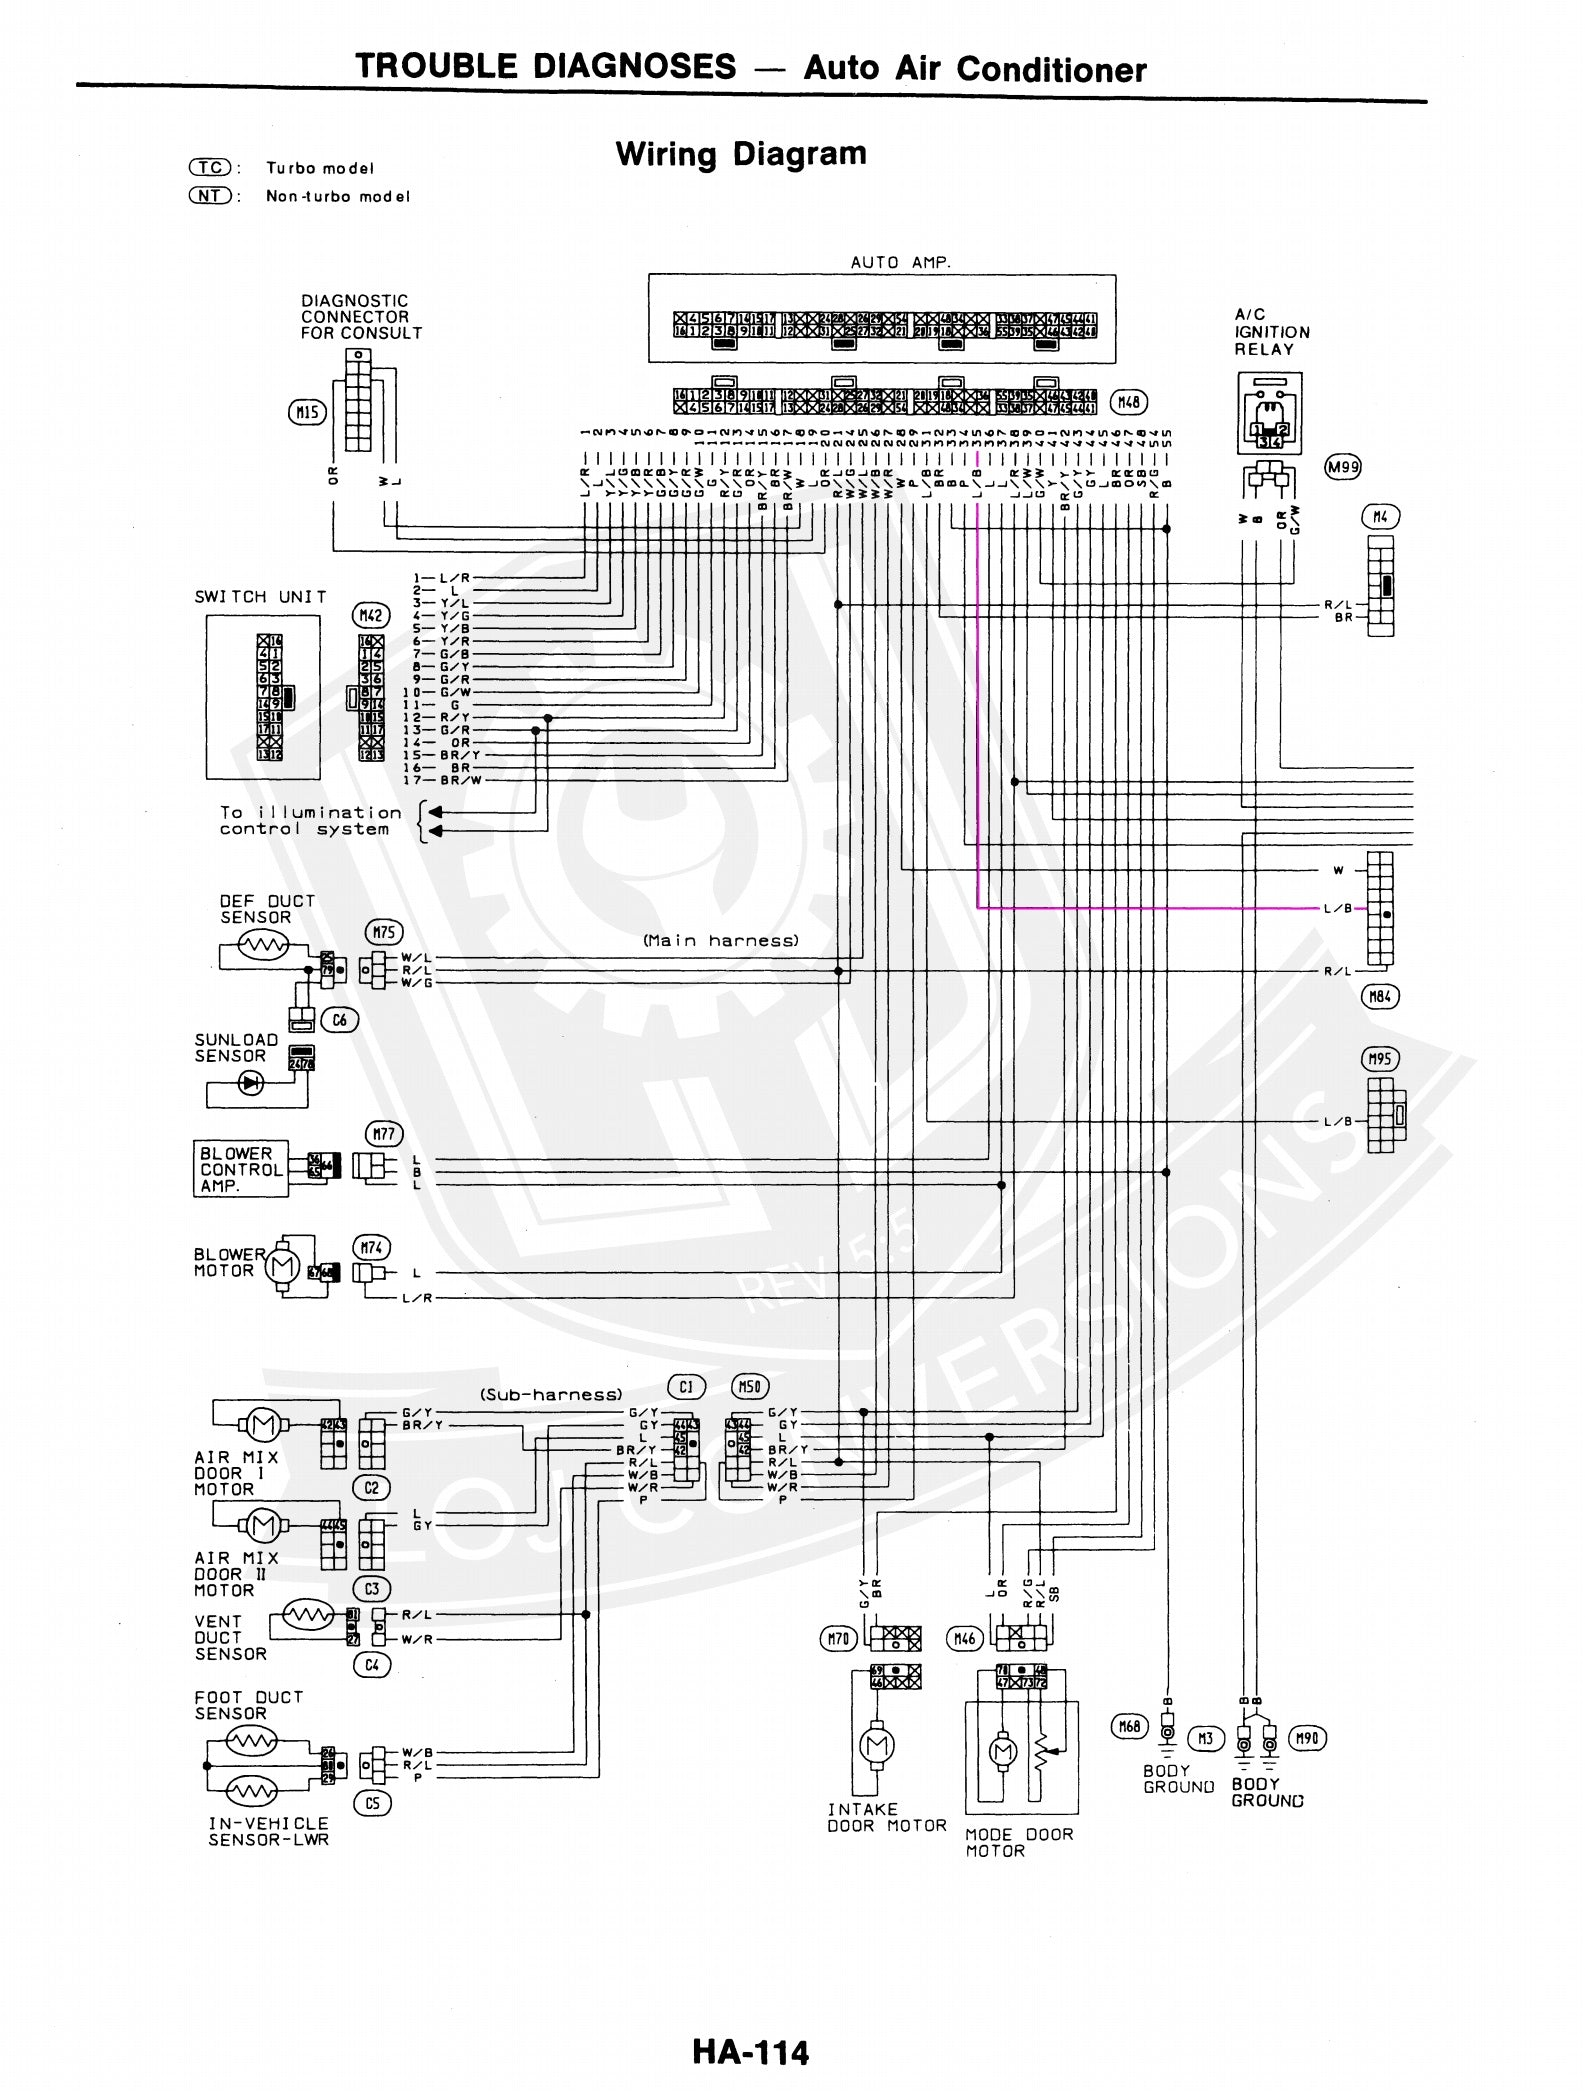 wiring the ac in a 300zx engine conversion loj conversions rh lojkits com 1990 Nissan 300ZX Wiring-Diagram 1990 300Zx Engine Wiring Diagram